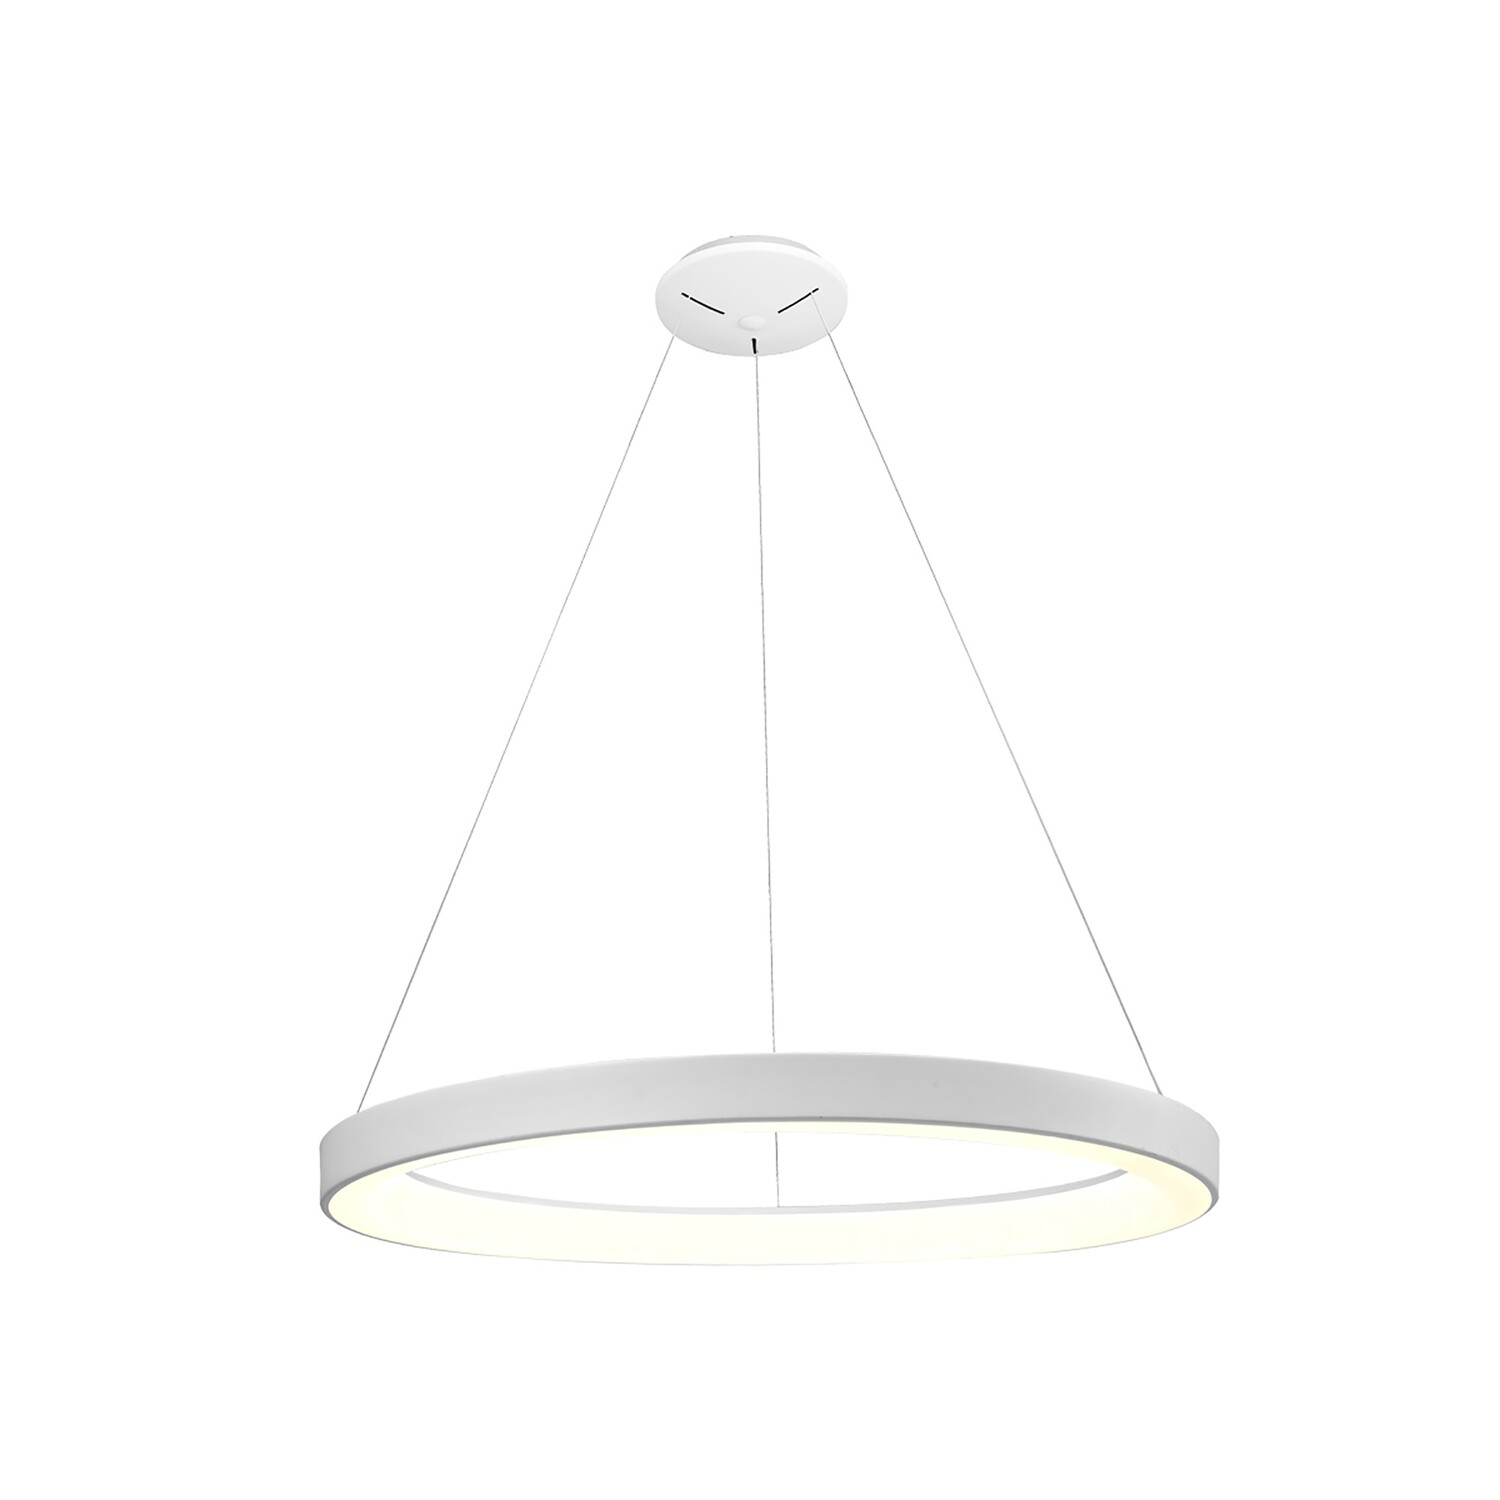 Niseko Dimmable RIng Pendant 90cm Round 60W LED 3000K, 3500lm, White